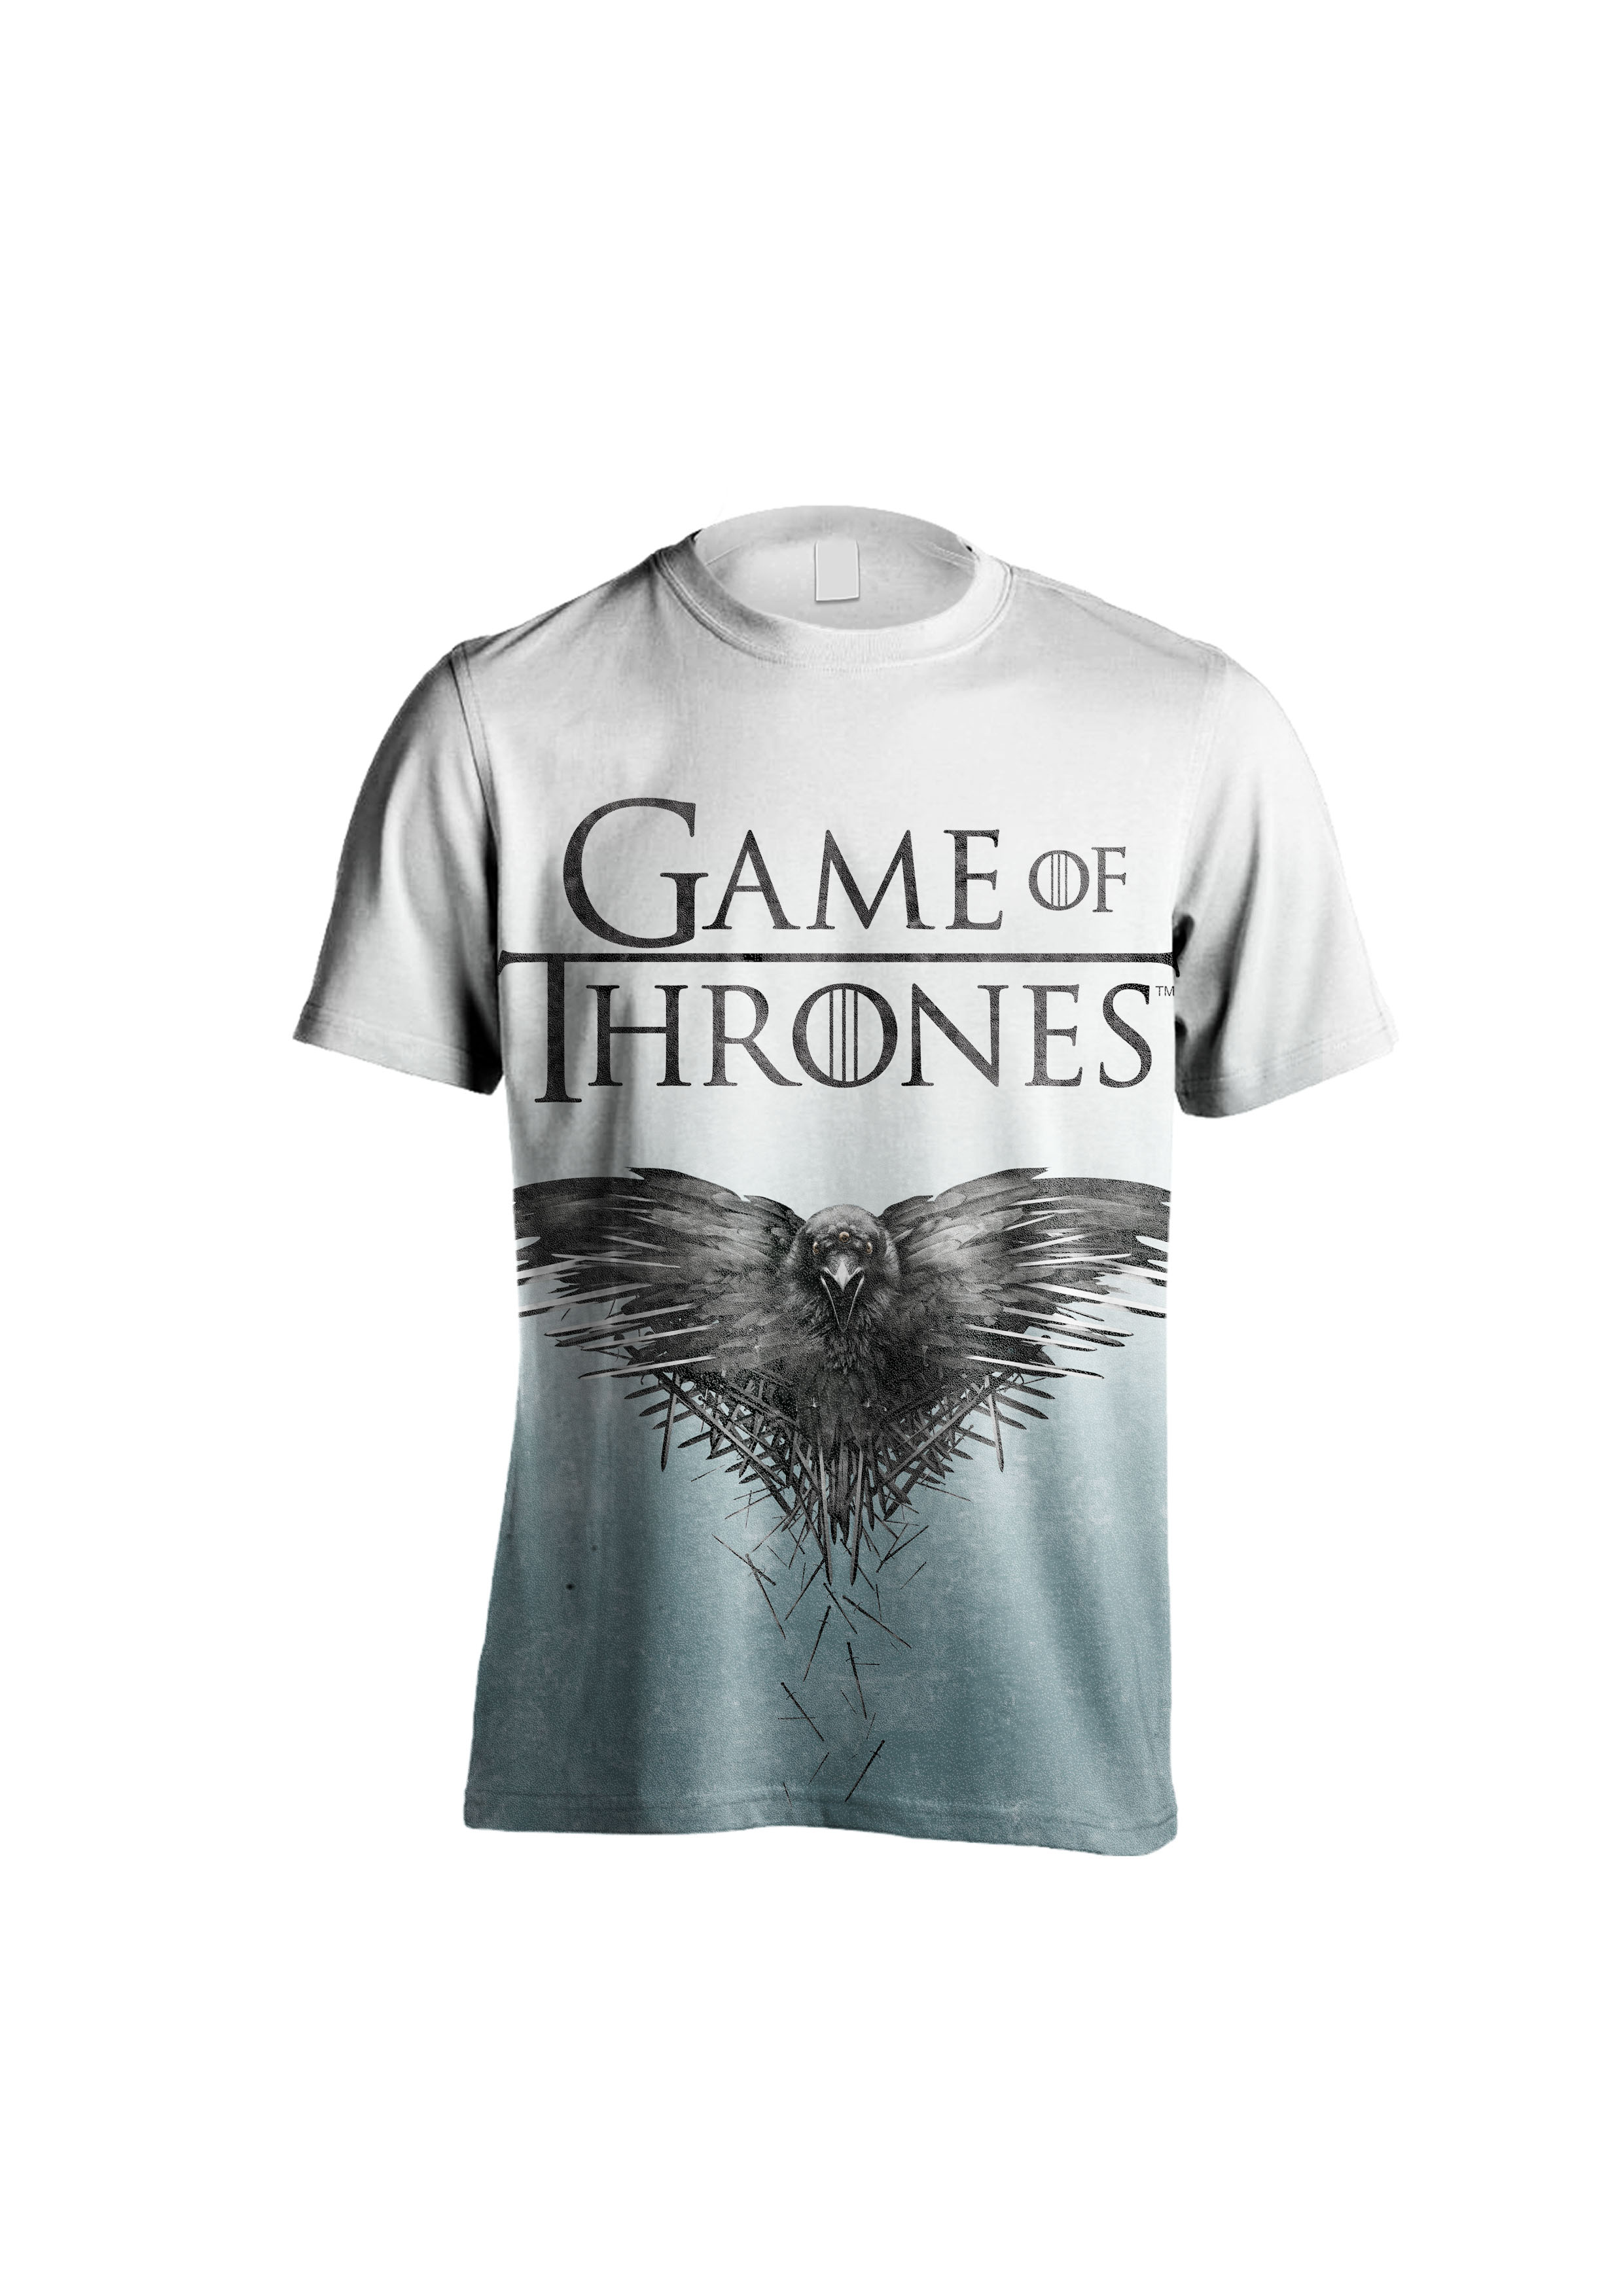 0328be65 (XL Size) Game Of Thrones – Raven Sublimation T-Shirt